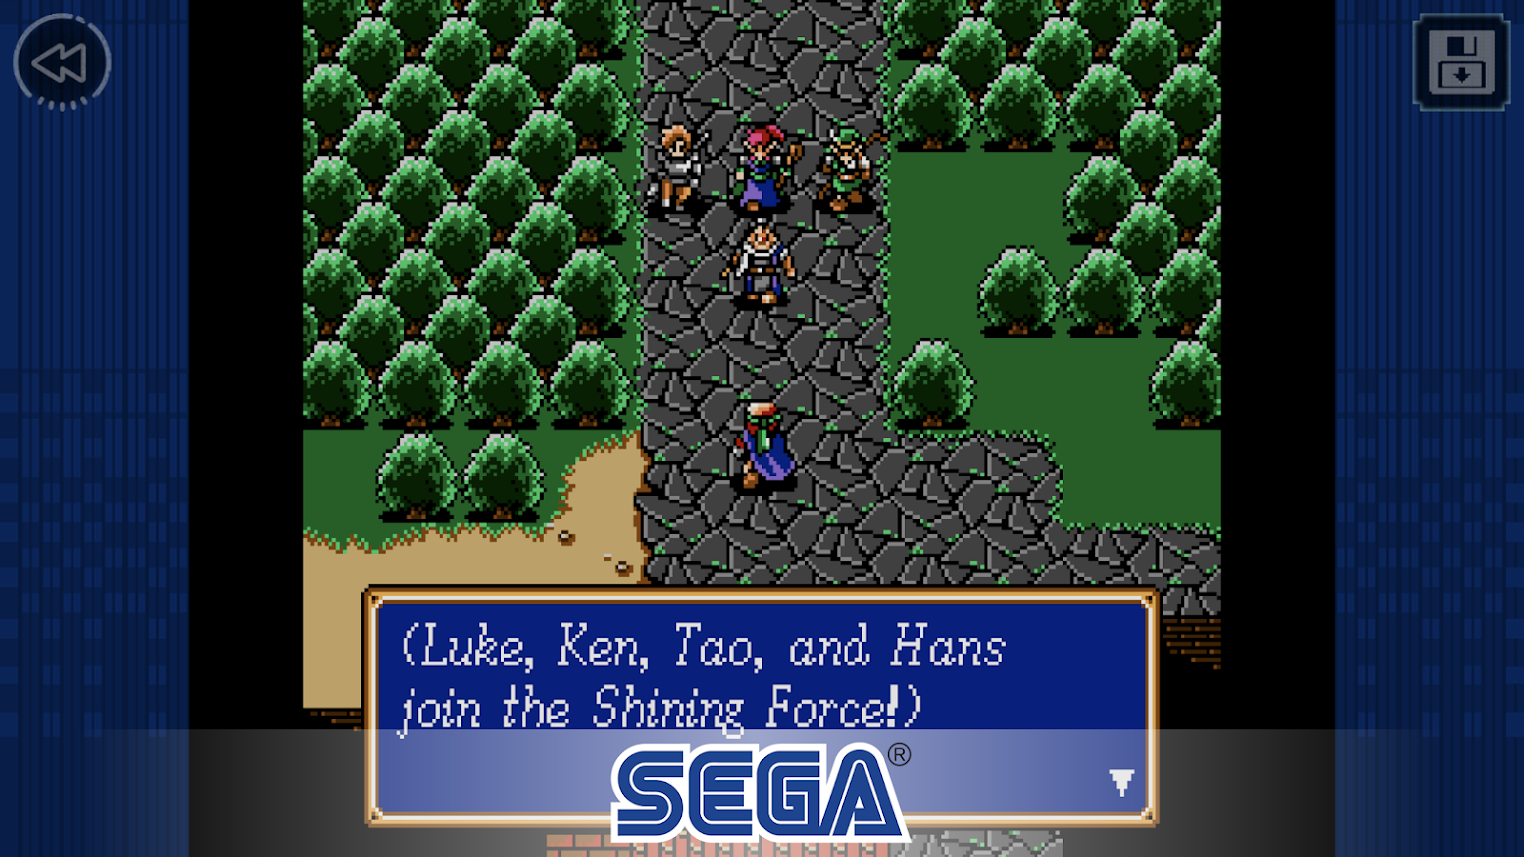 Shining Force Classics is the latest SEGA Forever release on